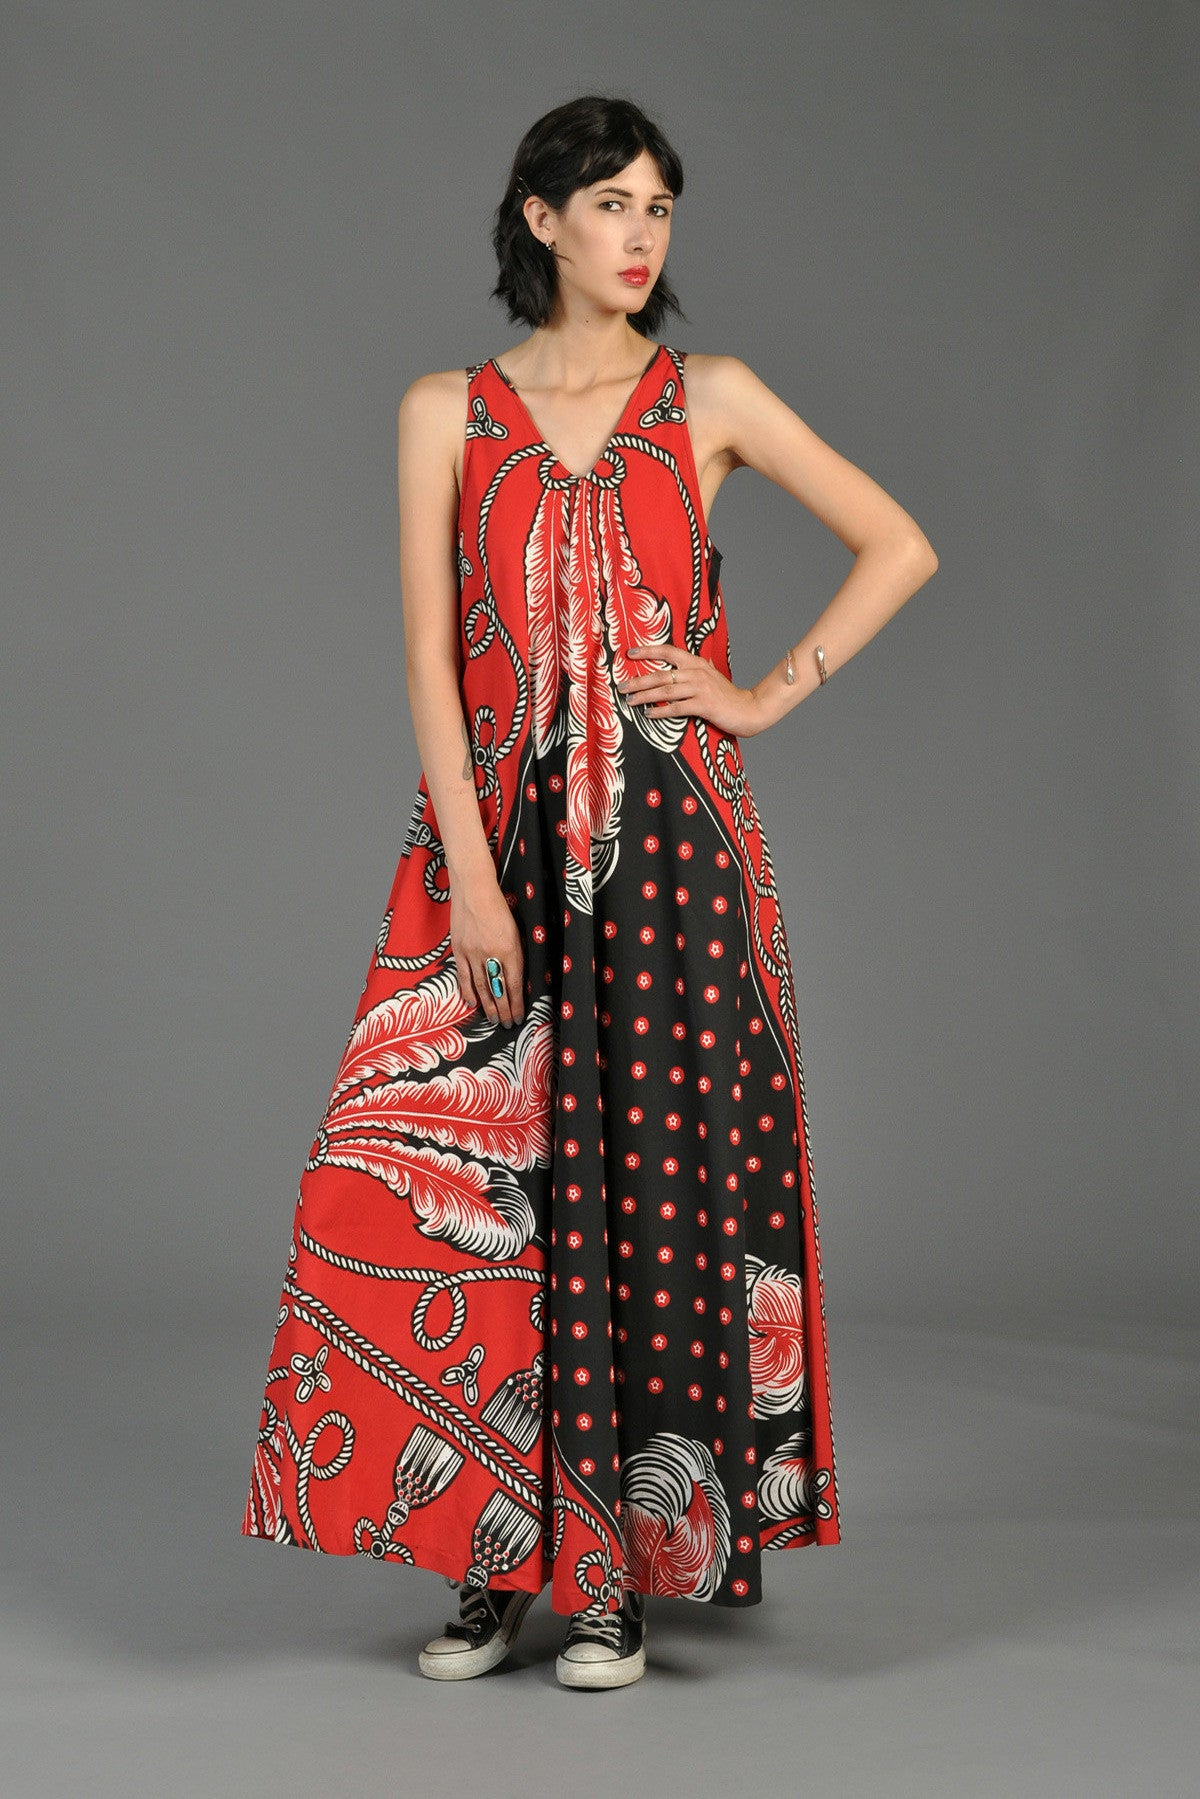 Graphic Feather Tassel Print Maxi Tent Dress Bustown